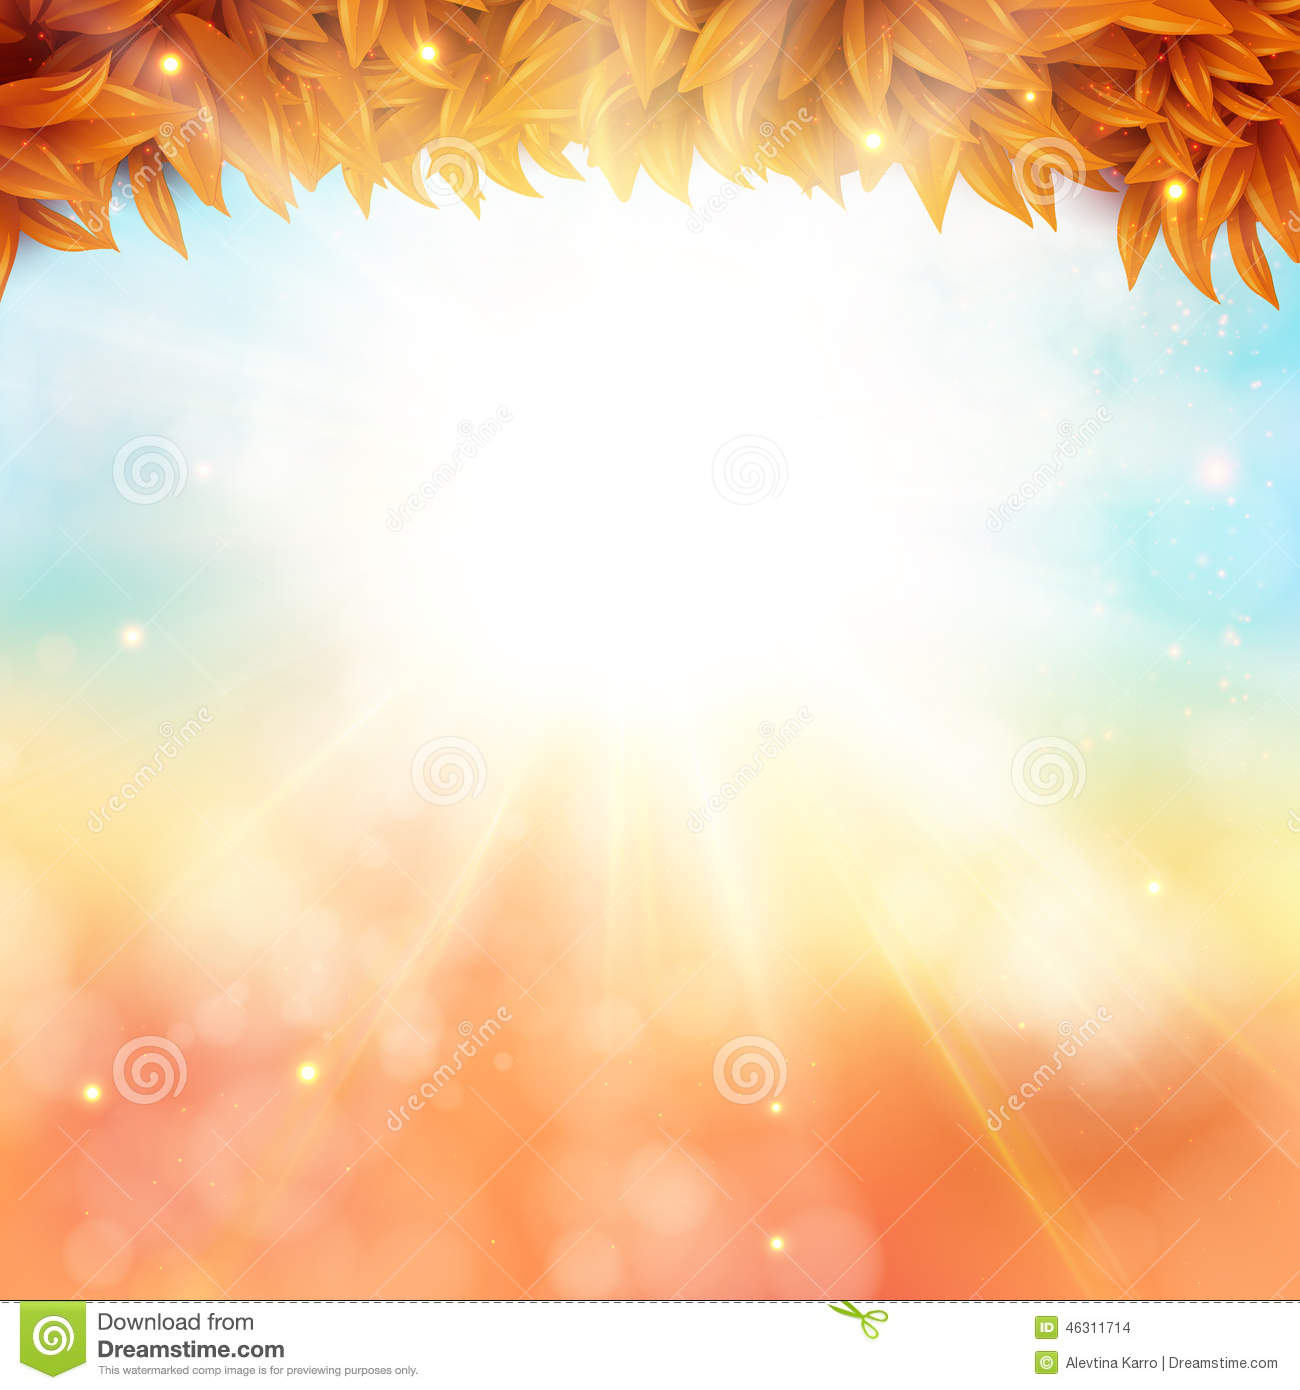 New background images environment free wallpaper - Abstract Autumn Poster With Shining Sun And Blurred